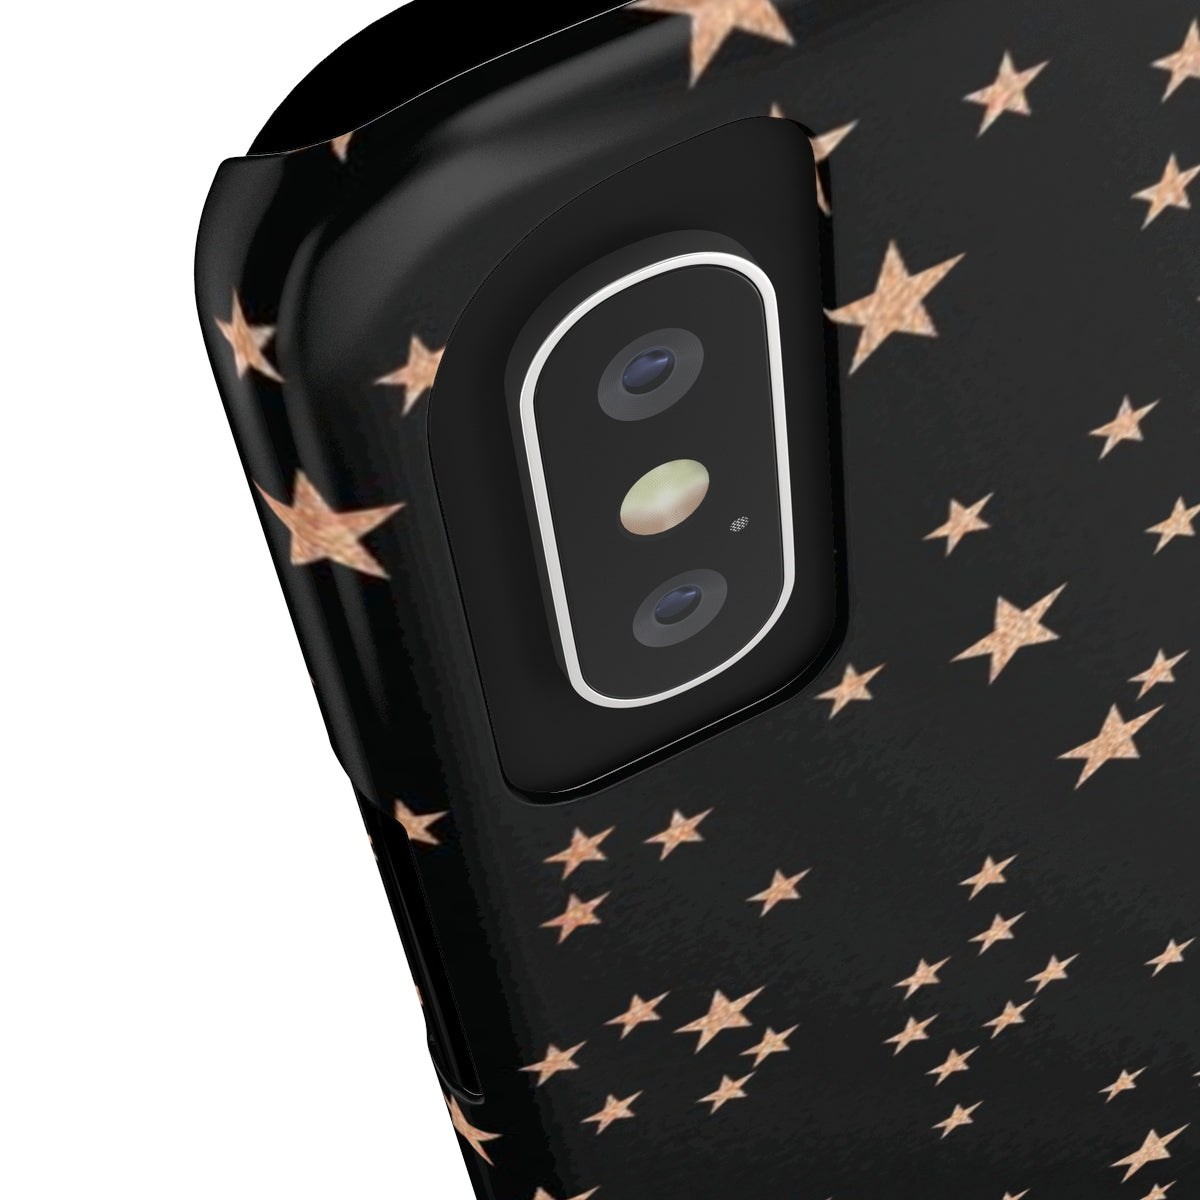 Twinkle Sleek and Chic Phone Case